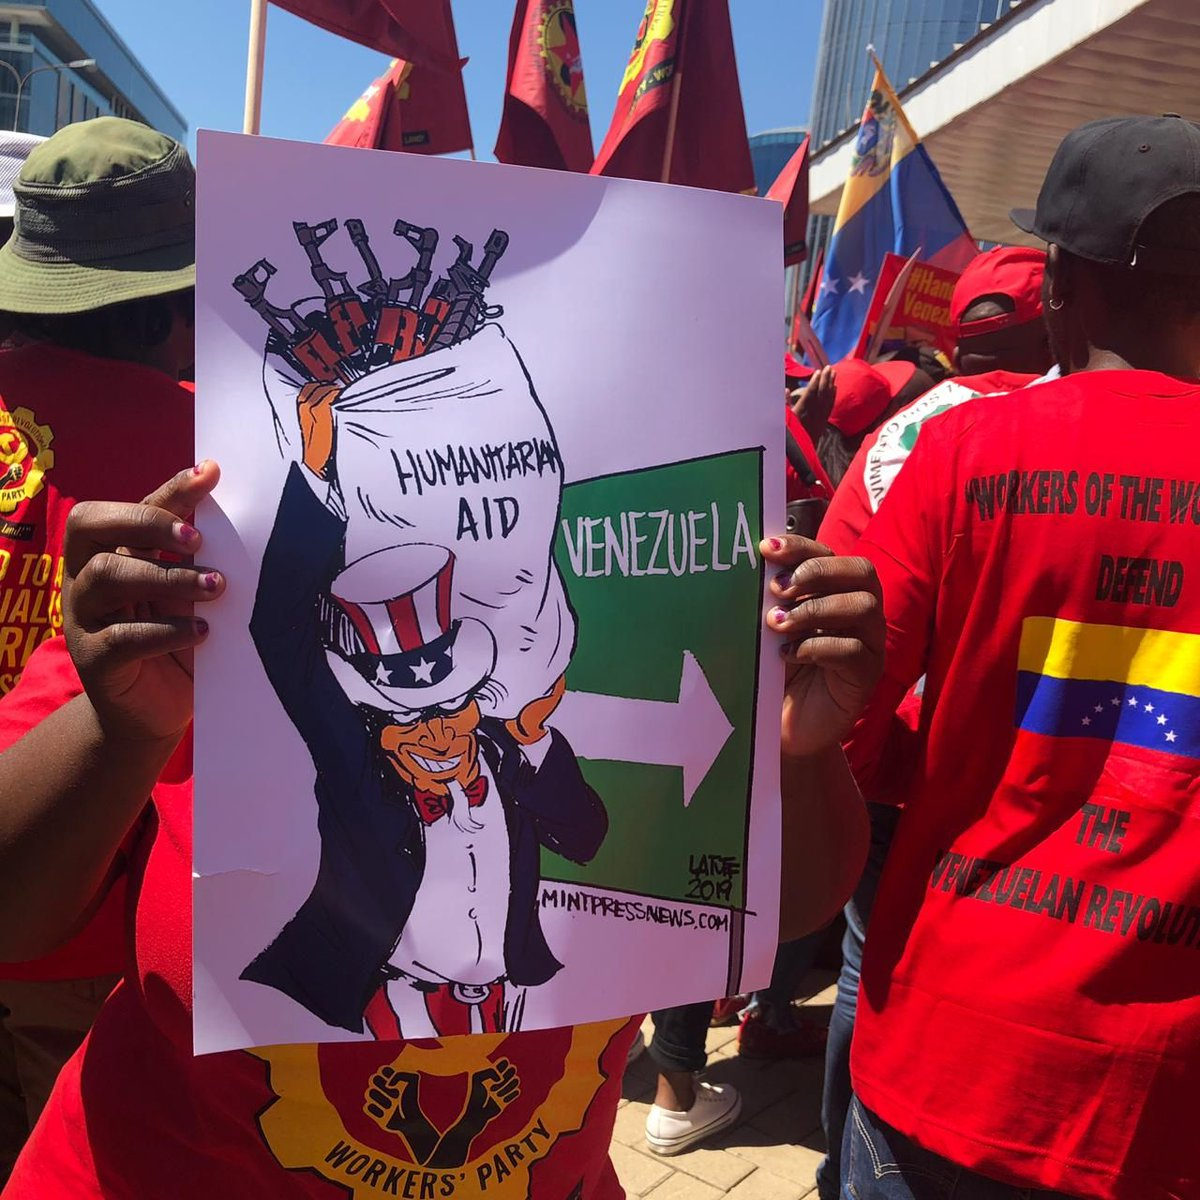 #InPictures | Outside #UnitedStates Embassy in #Johannesburg this morning. Socialist Revolutionary Worker&#39;s Party Numsa, Socialist Party Zambia and other left formations picketing for the past four hours and concluding with handing over a Memorandum. #Venezuela #HandsOffVenezuela <br>http://pic.twitter.com/1rxV3J5M2L